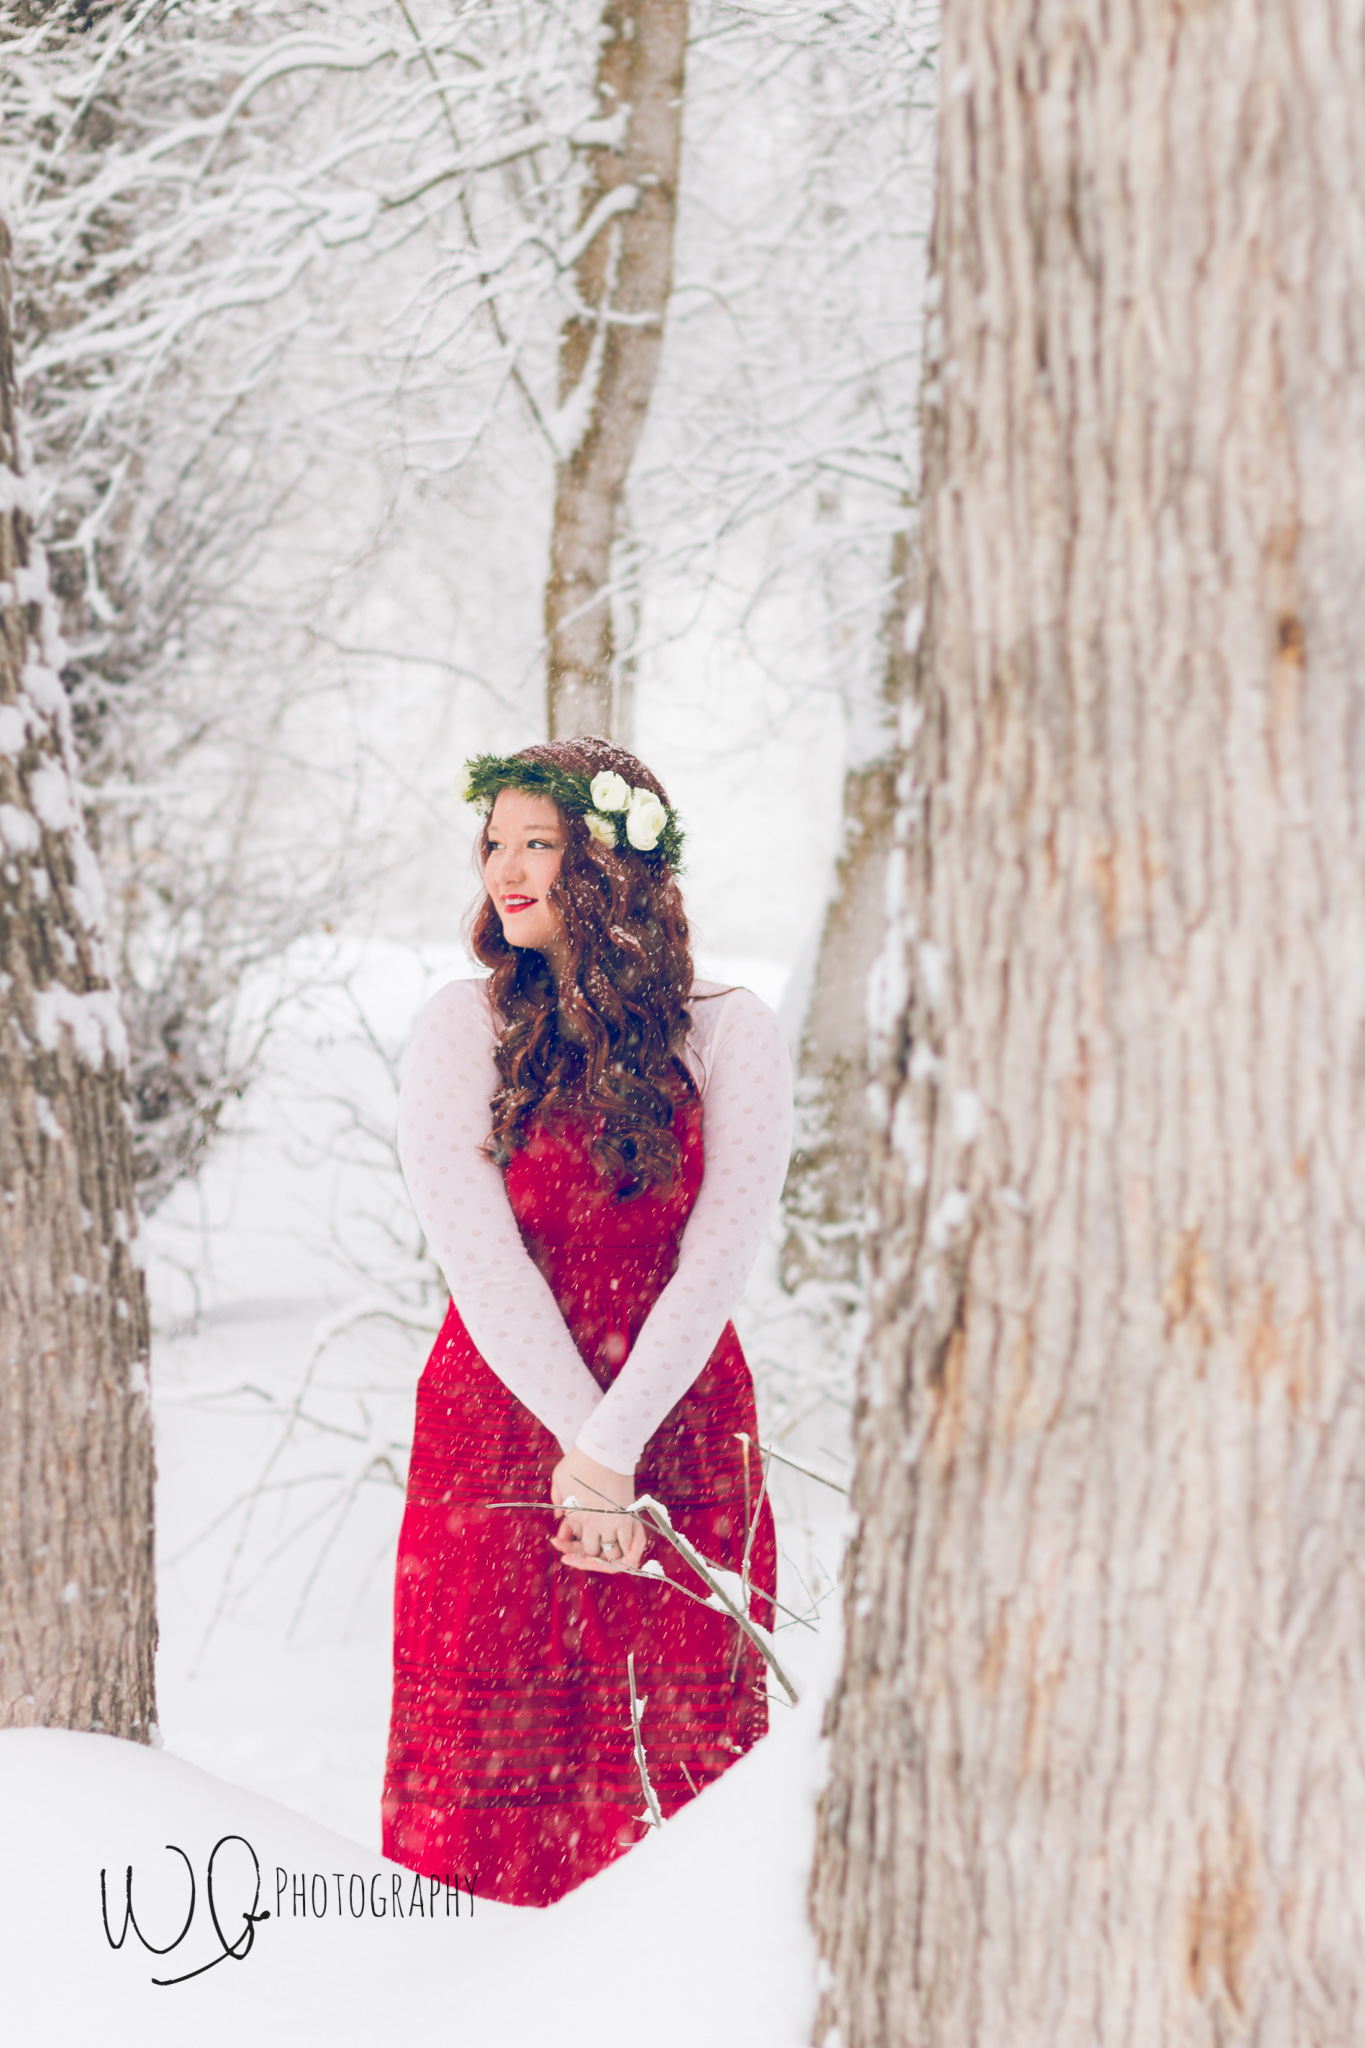 Senior photos, winter photo shoot